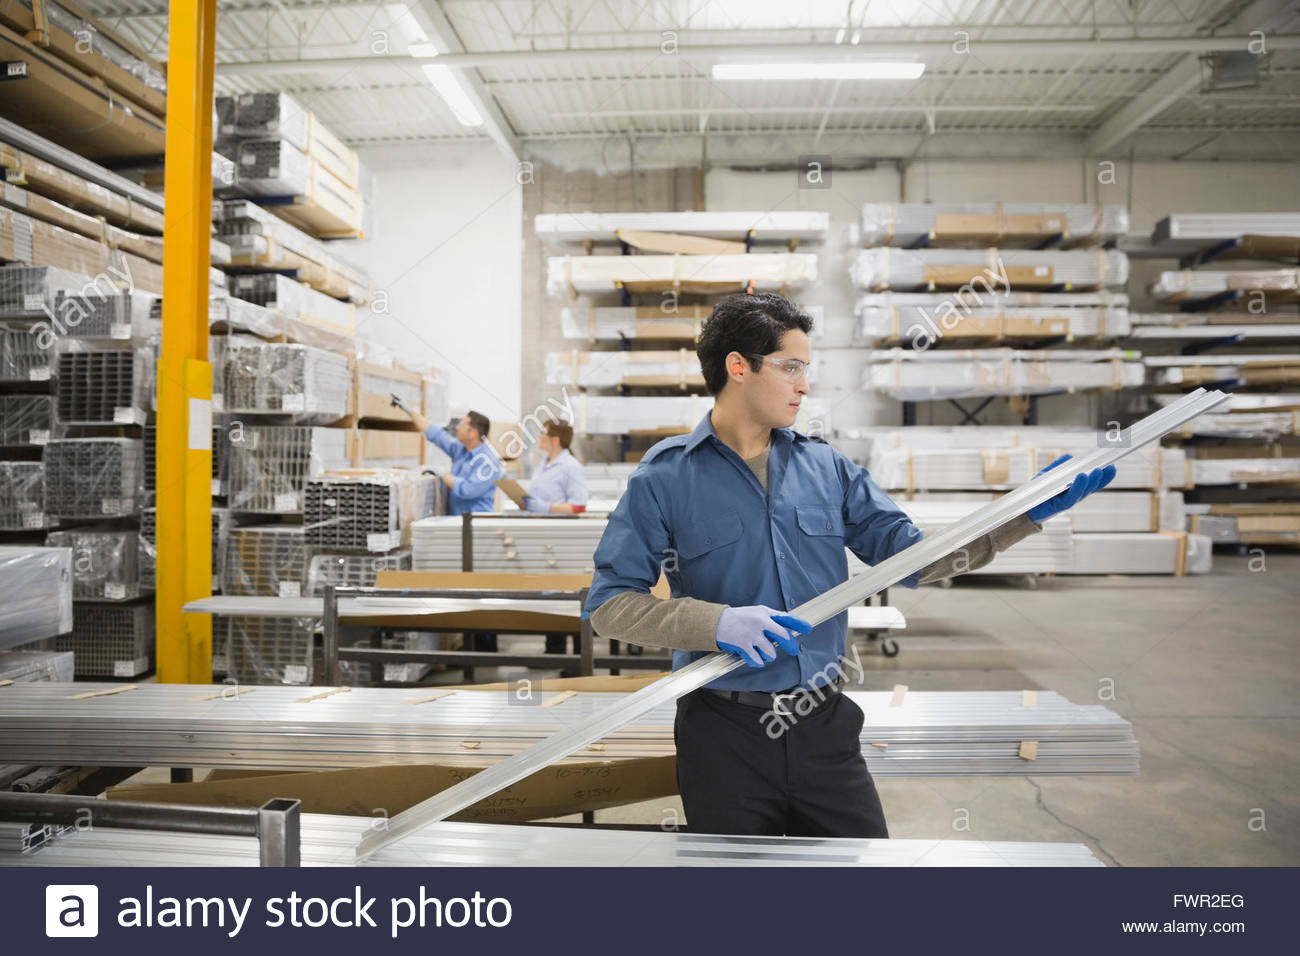 Worker examining steel parts in factory - Stock Image